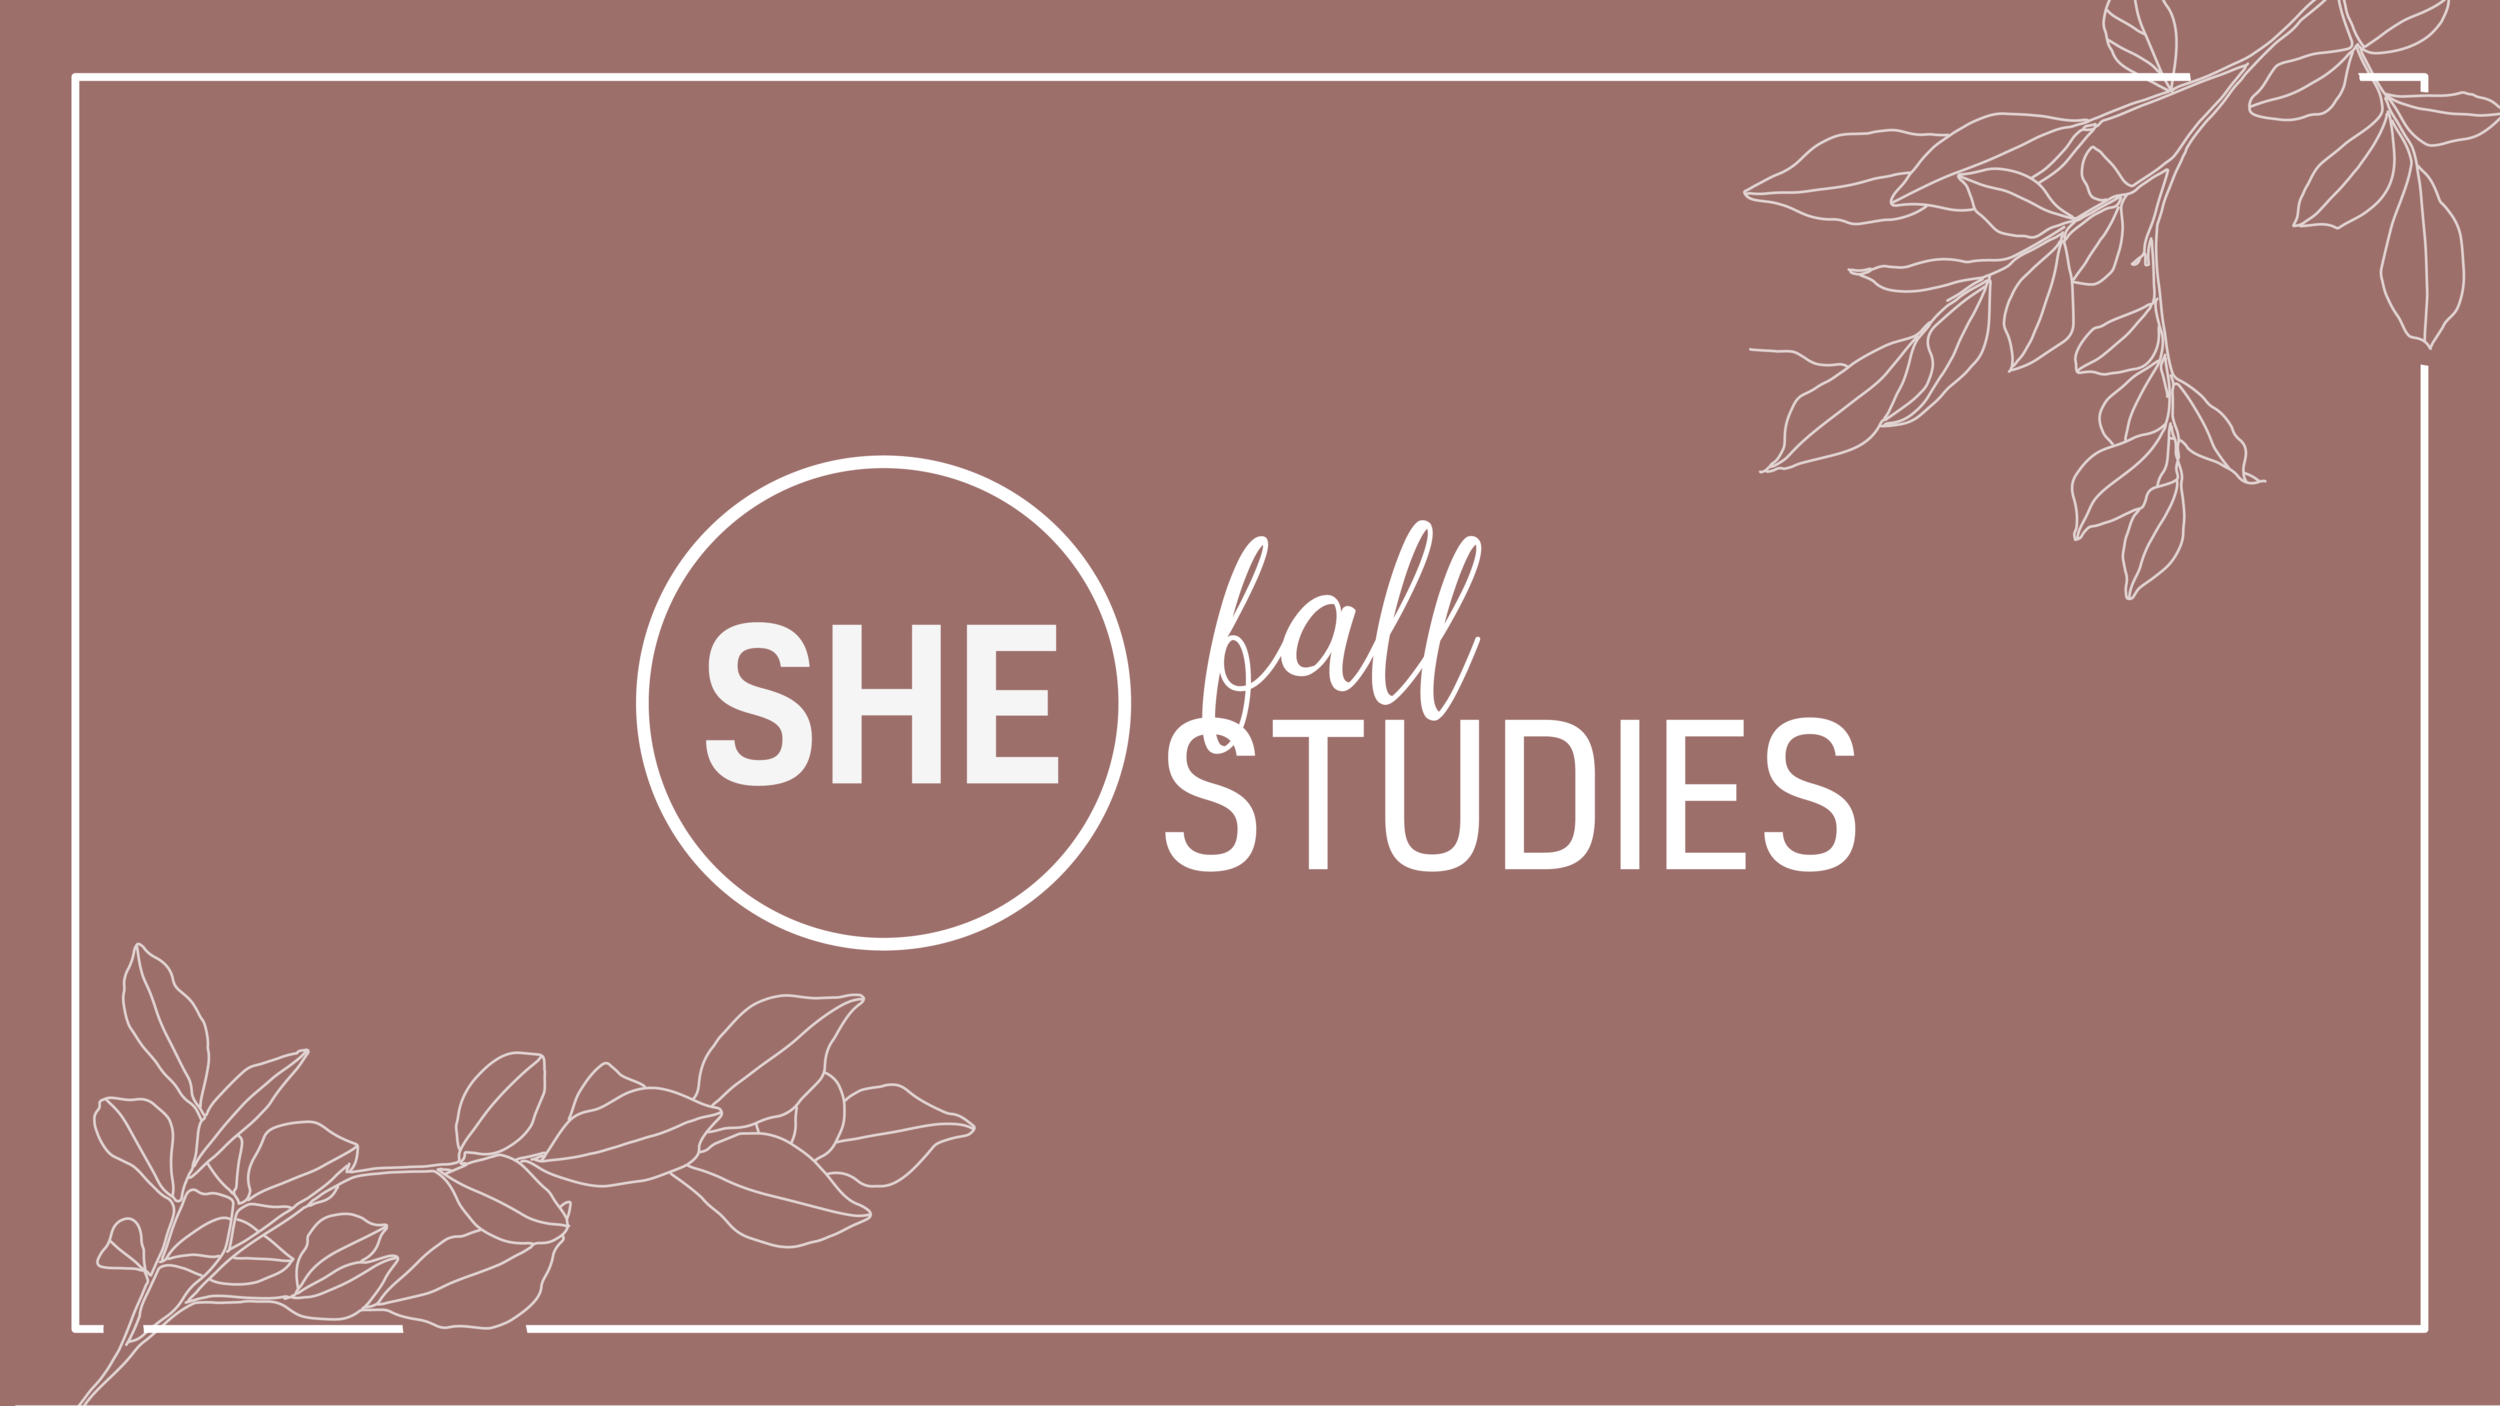 Join us for our Fall SHE Studies!